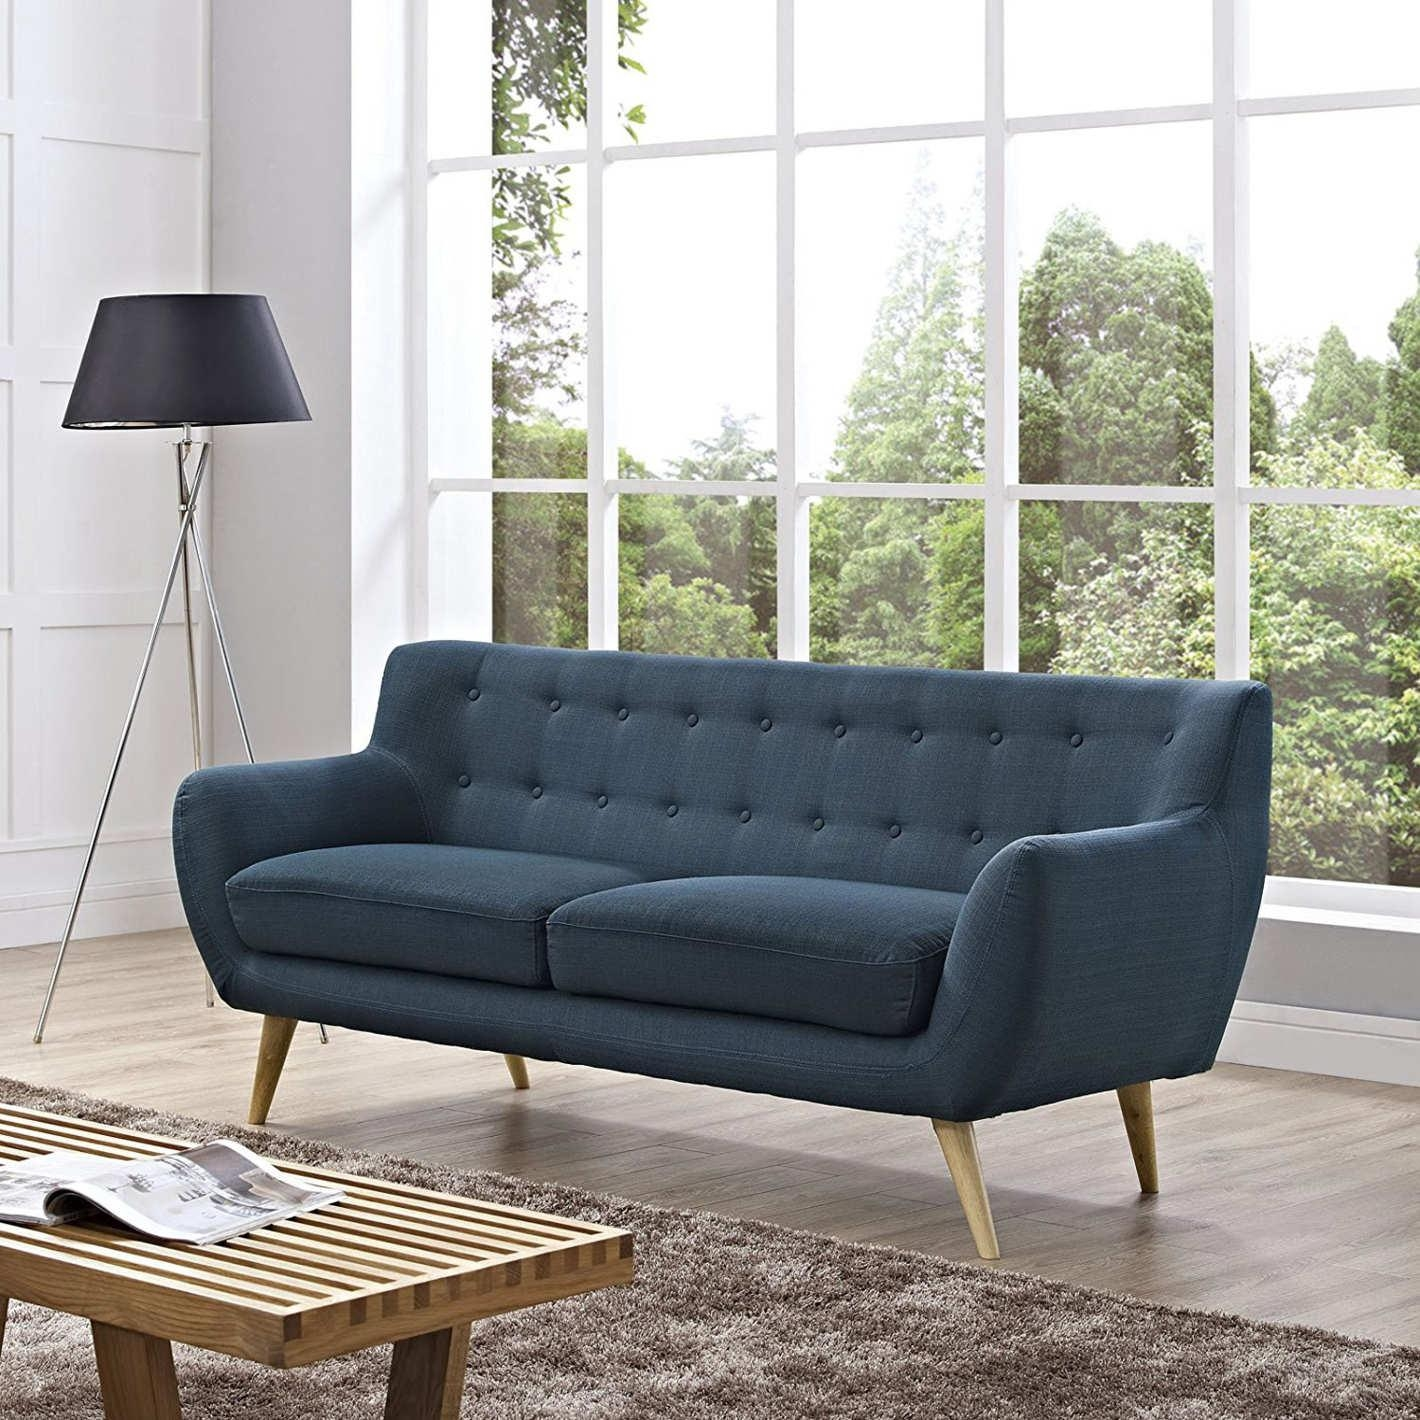 The Best Sofas Under $500 (Plus A Few Under $1000) Throughout Mod Sofas (Image 20 of 20)